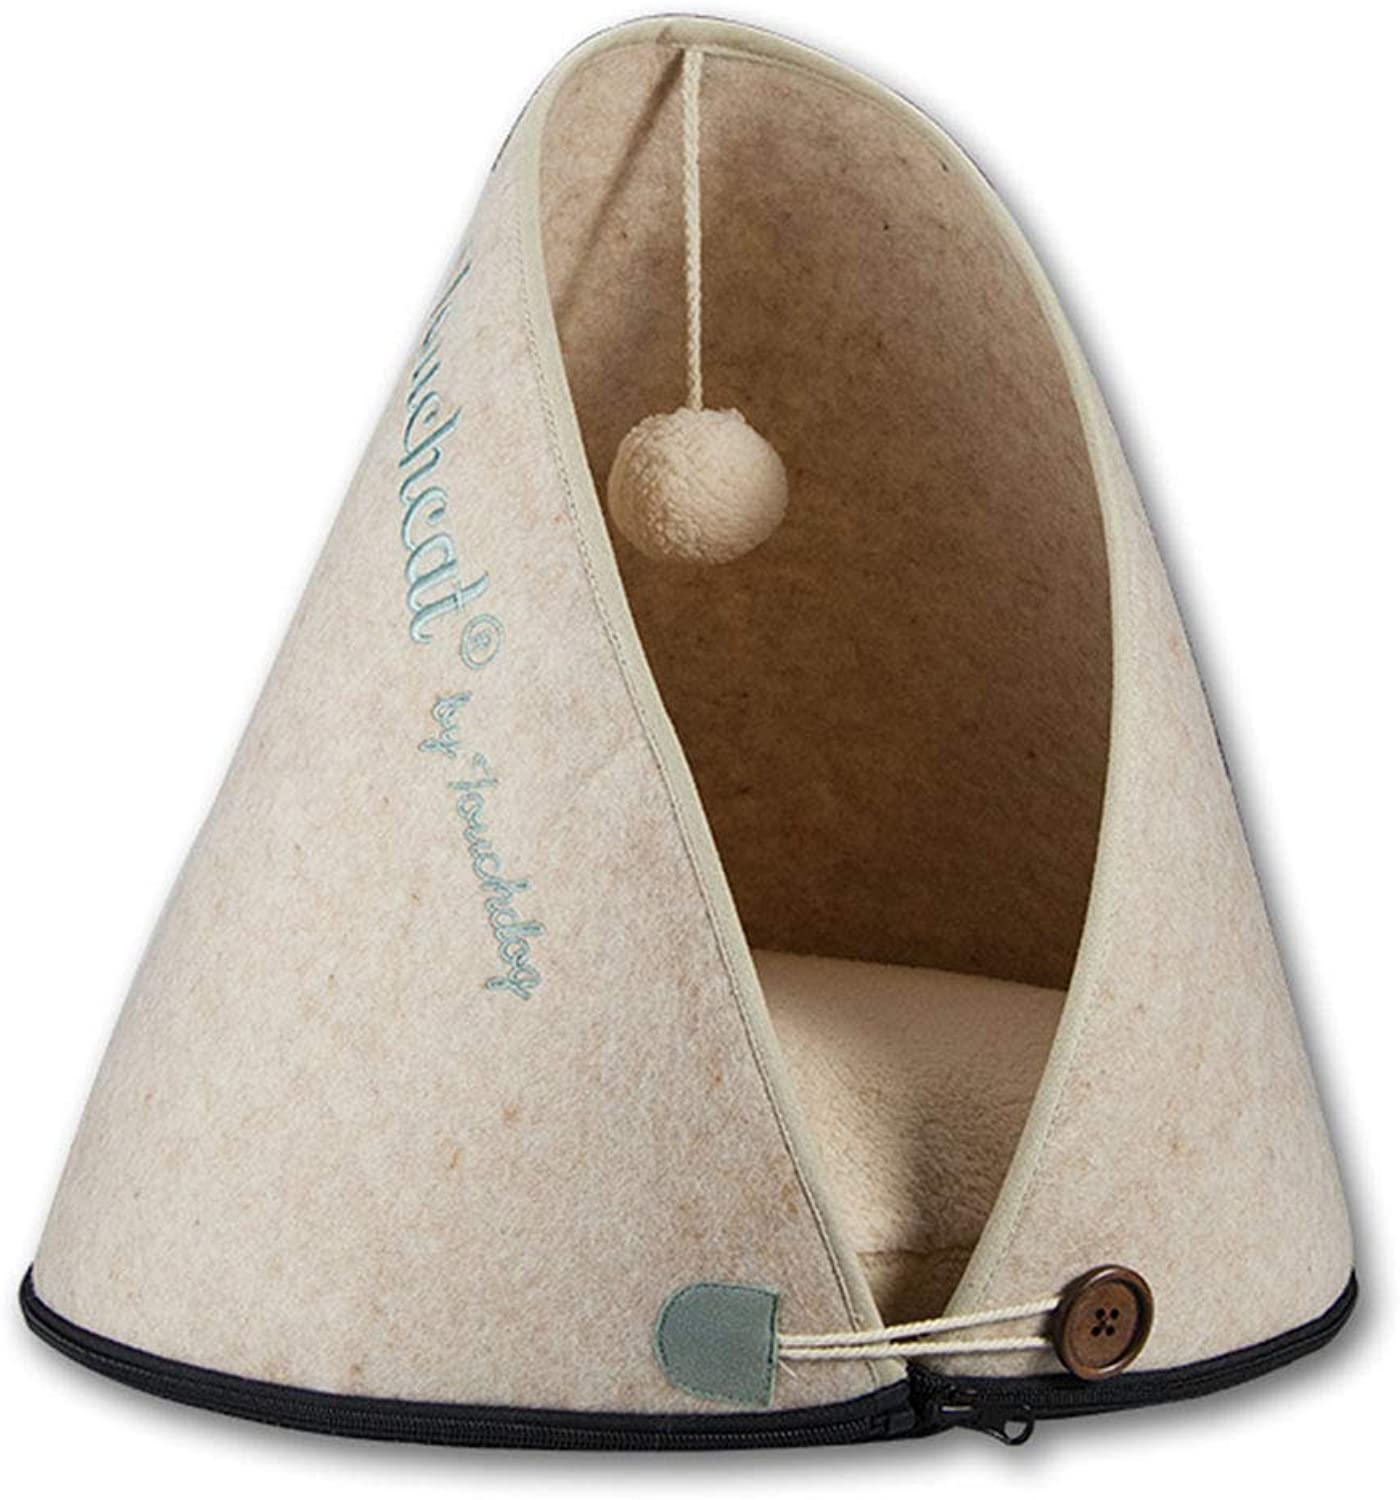 MeiHao Felt Cat Sleeping Bag, Closed Cat Bed House Soft Cat Cuddle Bed Cozy Pet Tent Pet Cave Nest with Warmer Cushion, Removable and Washable,Khaki